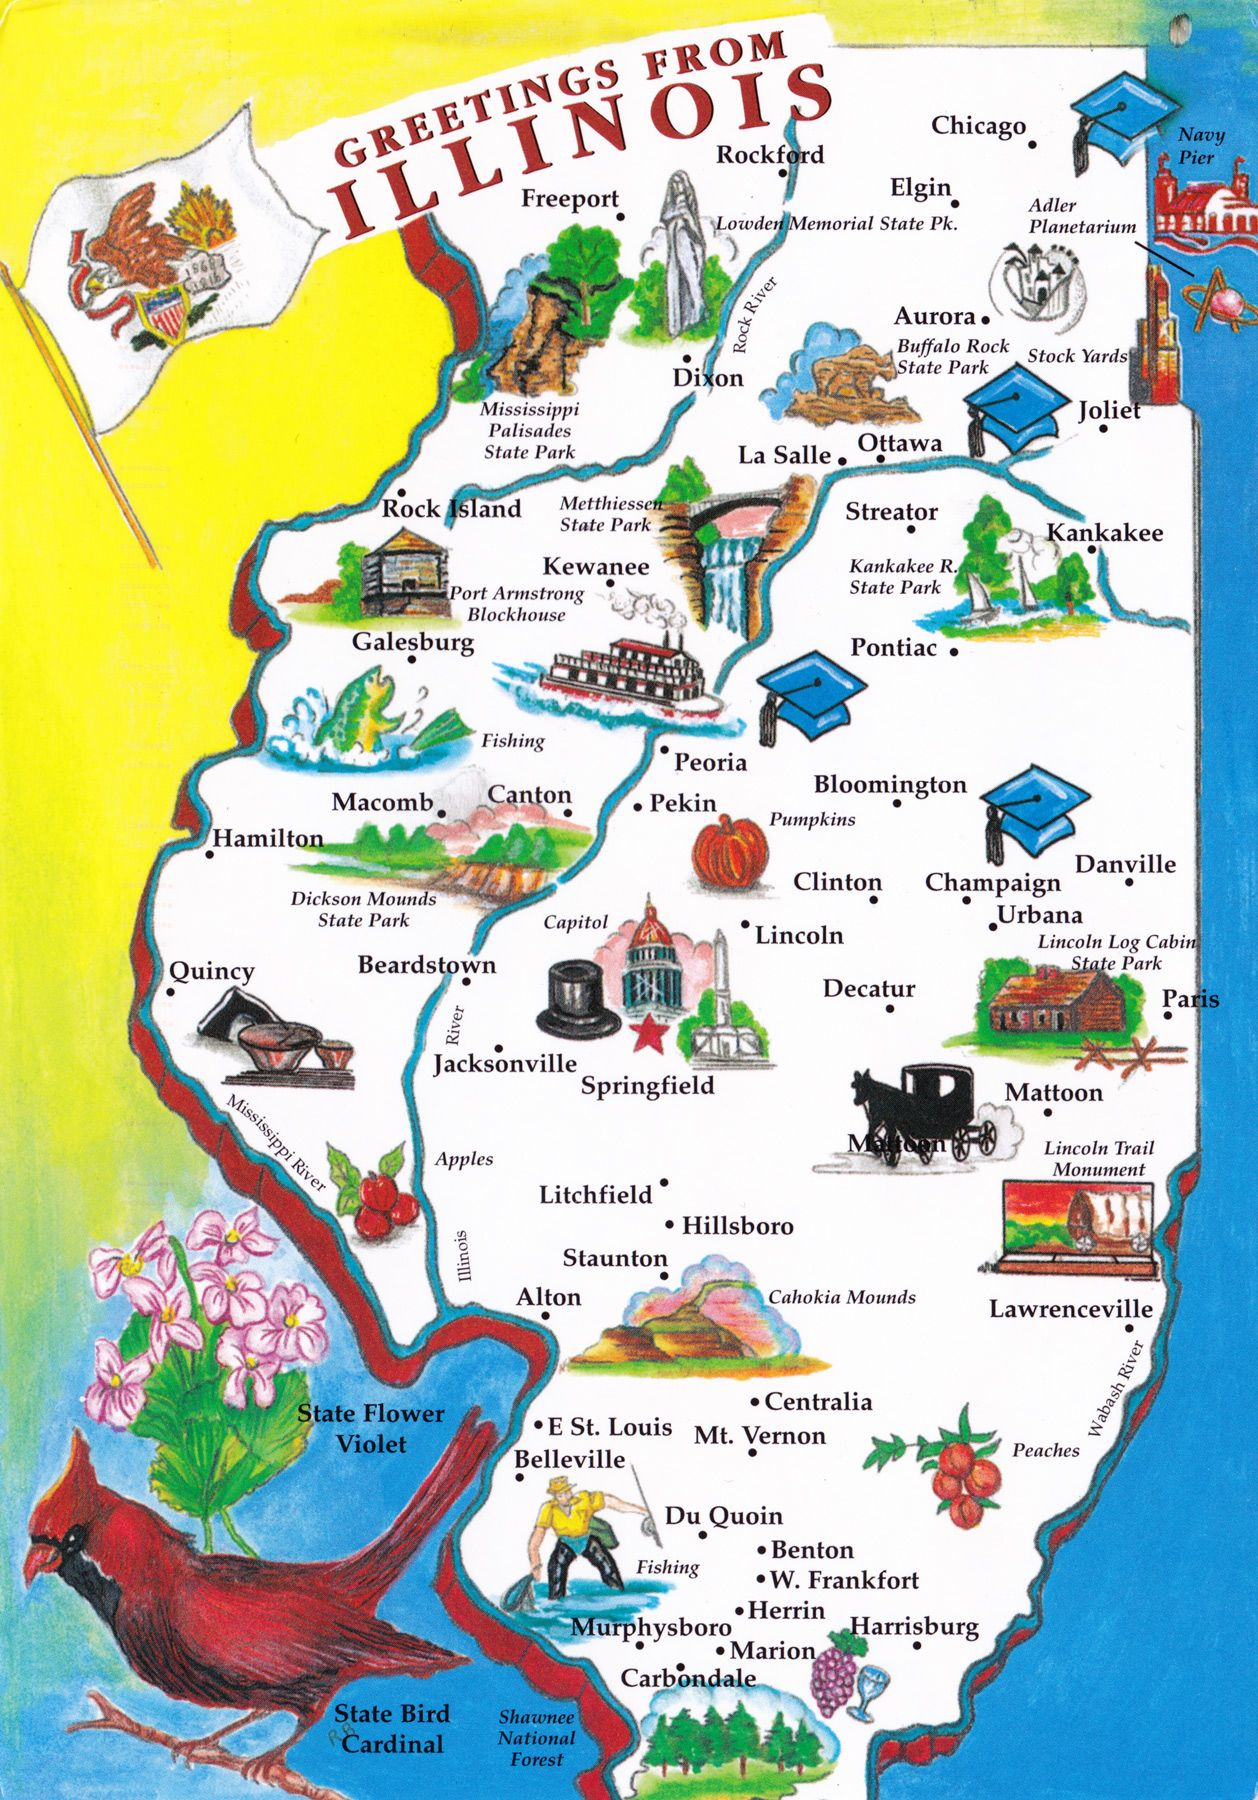 Illinois Been There Done That Pinterest Chicago Rockford - Illinois state map with towns